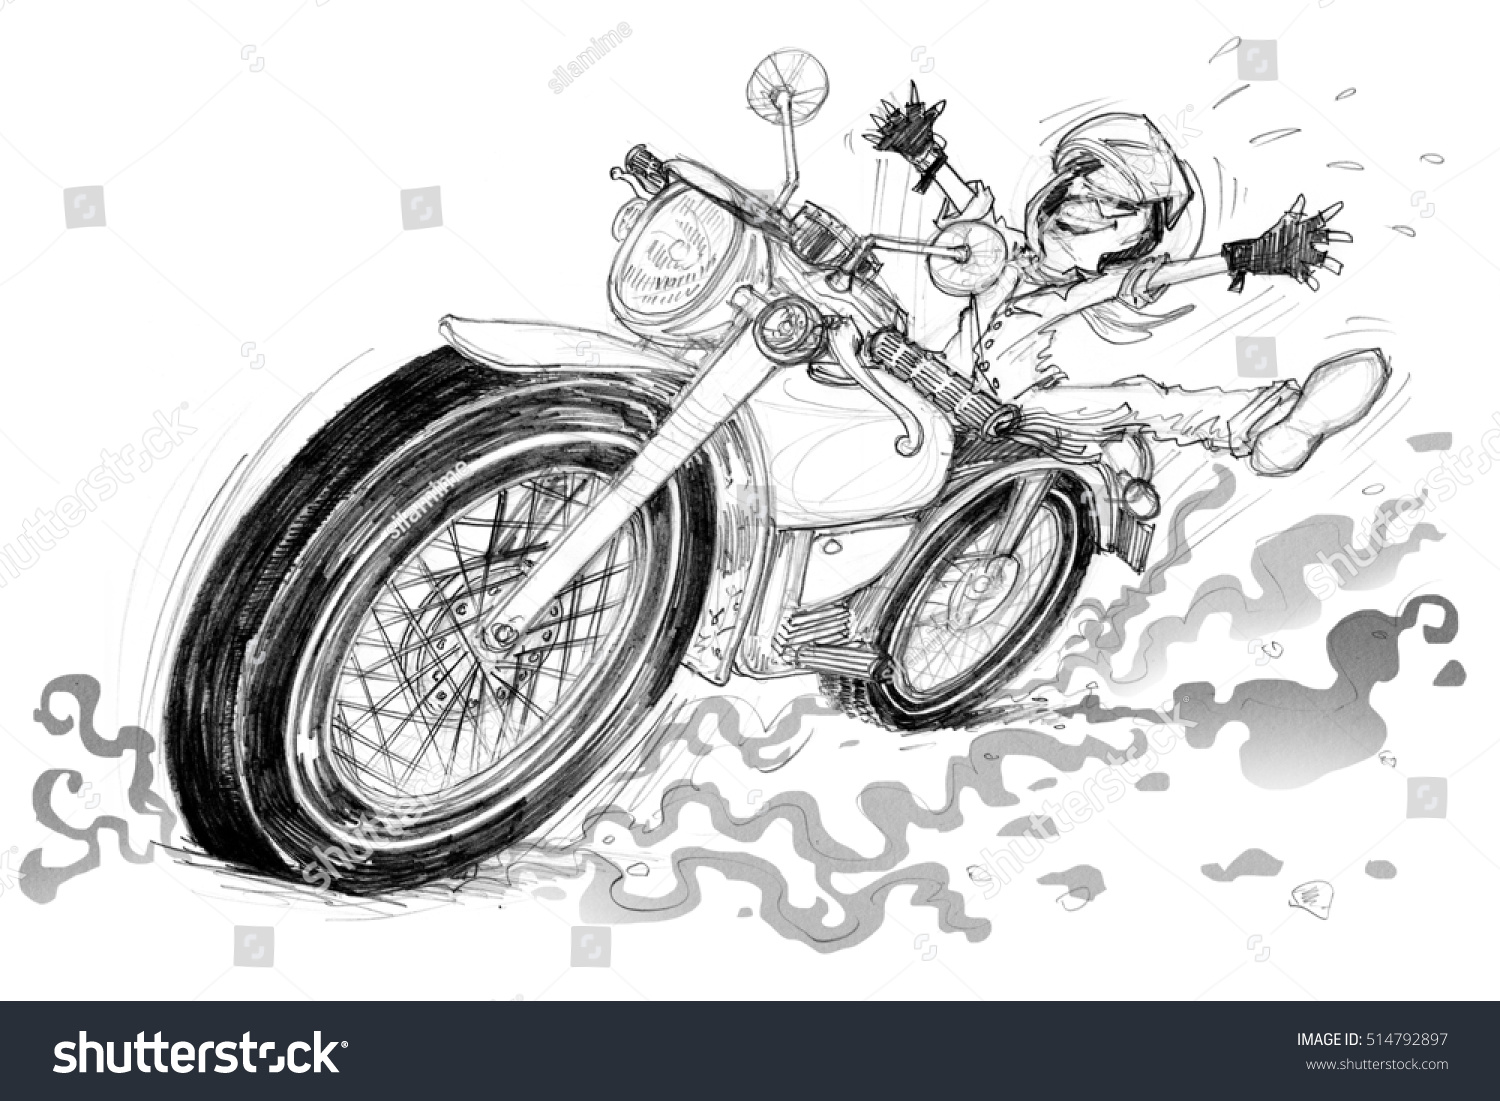 Man Very Happy Riding Vintage Motorcycle Stock